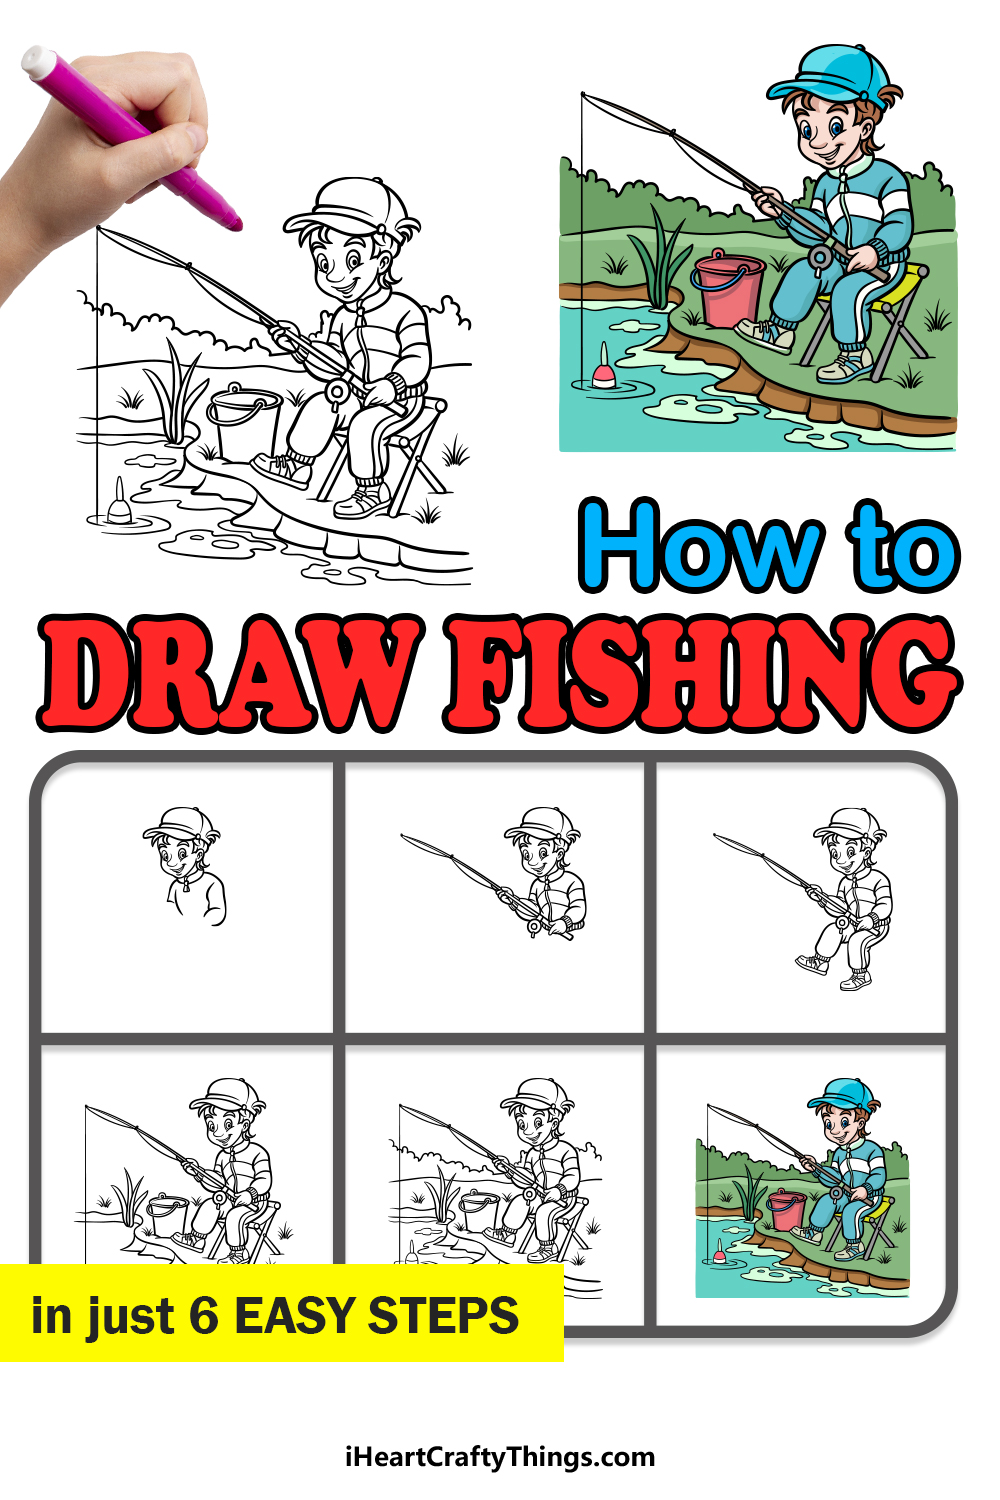 how to draw fishing in 6 easy steps